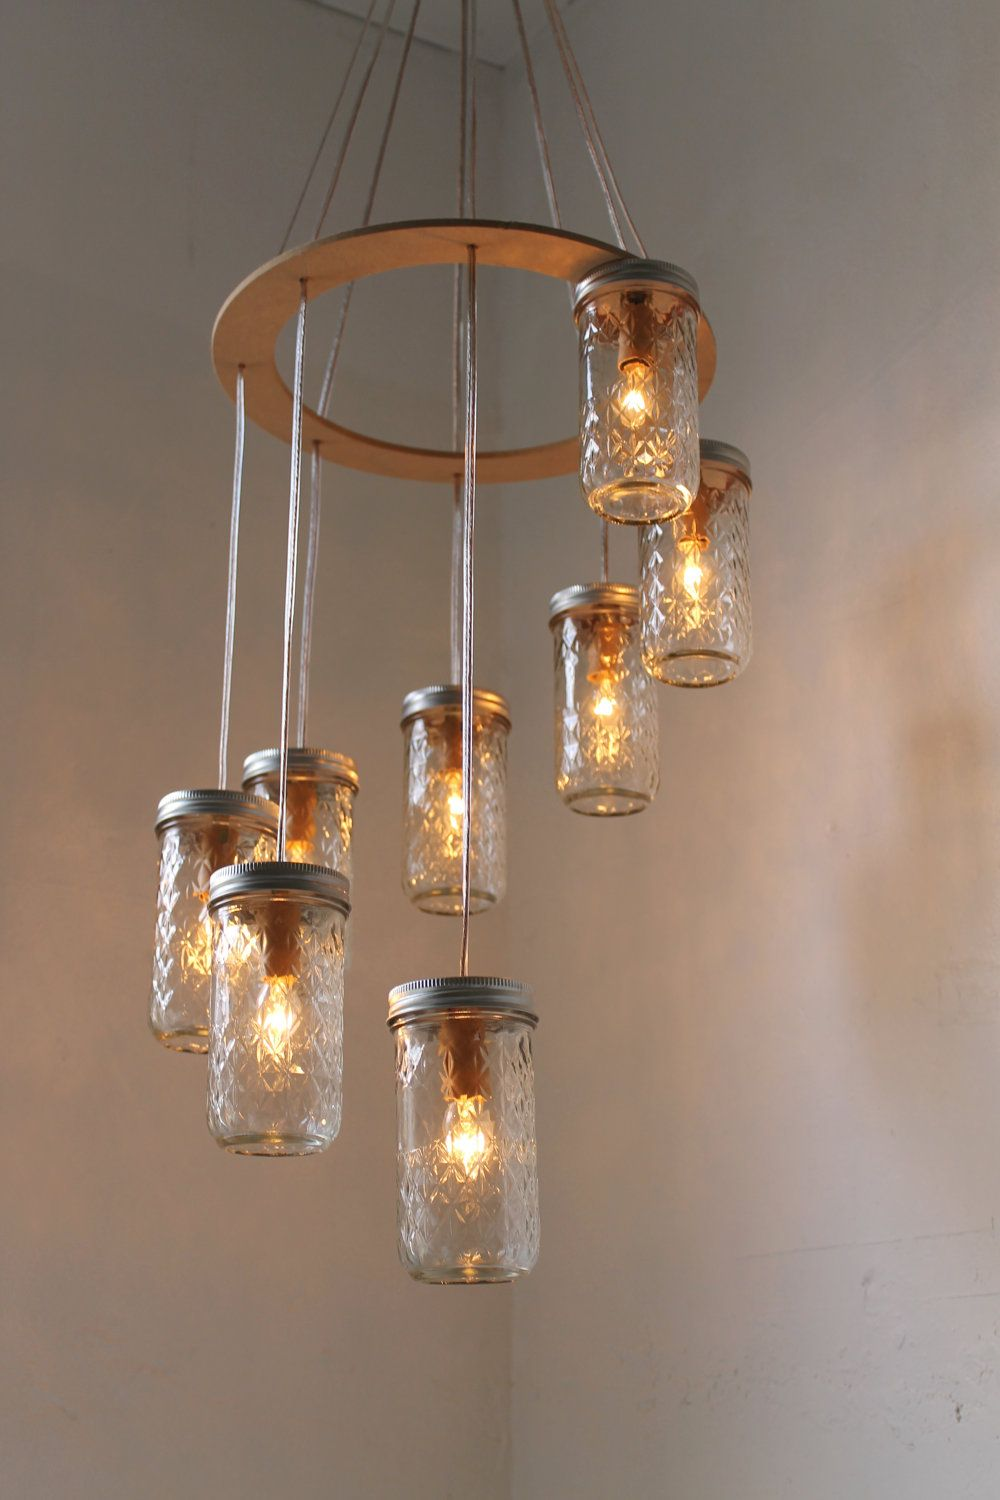 Quilted diamonds canning jar waterfall chandelier spaces and what mason jar chandelier spiral waterfall mason jar lighting fixture with 8 quilted pint jars bootsngus rustic modern home lighting decor arubaitofo Images